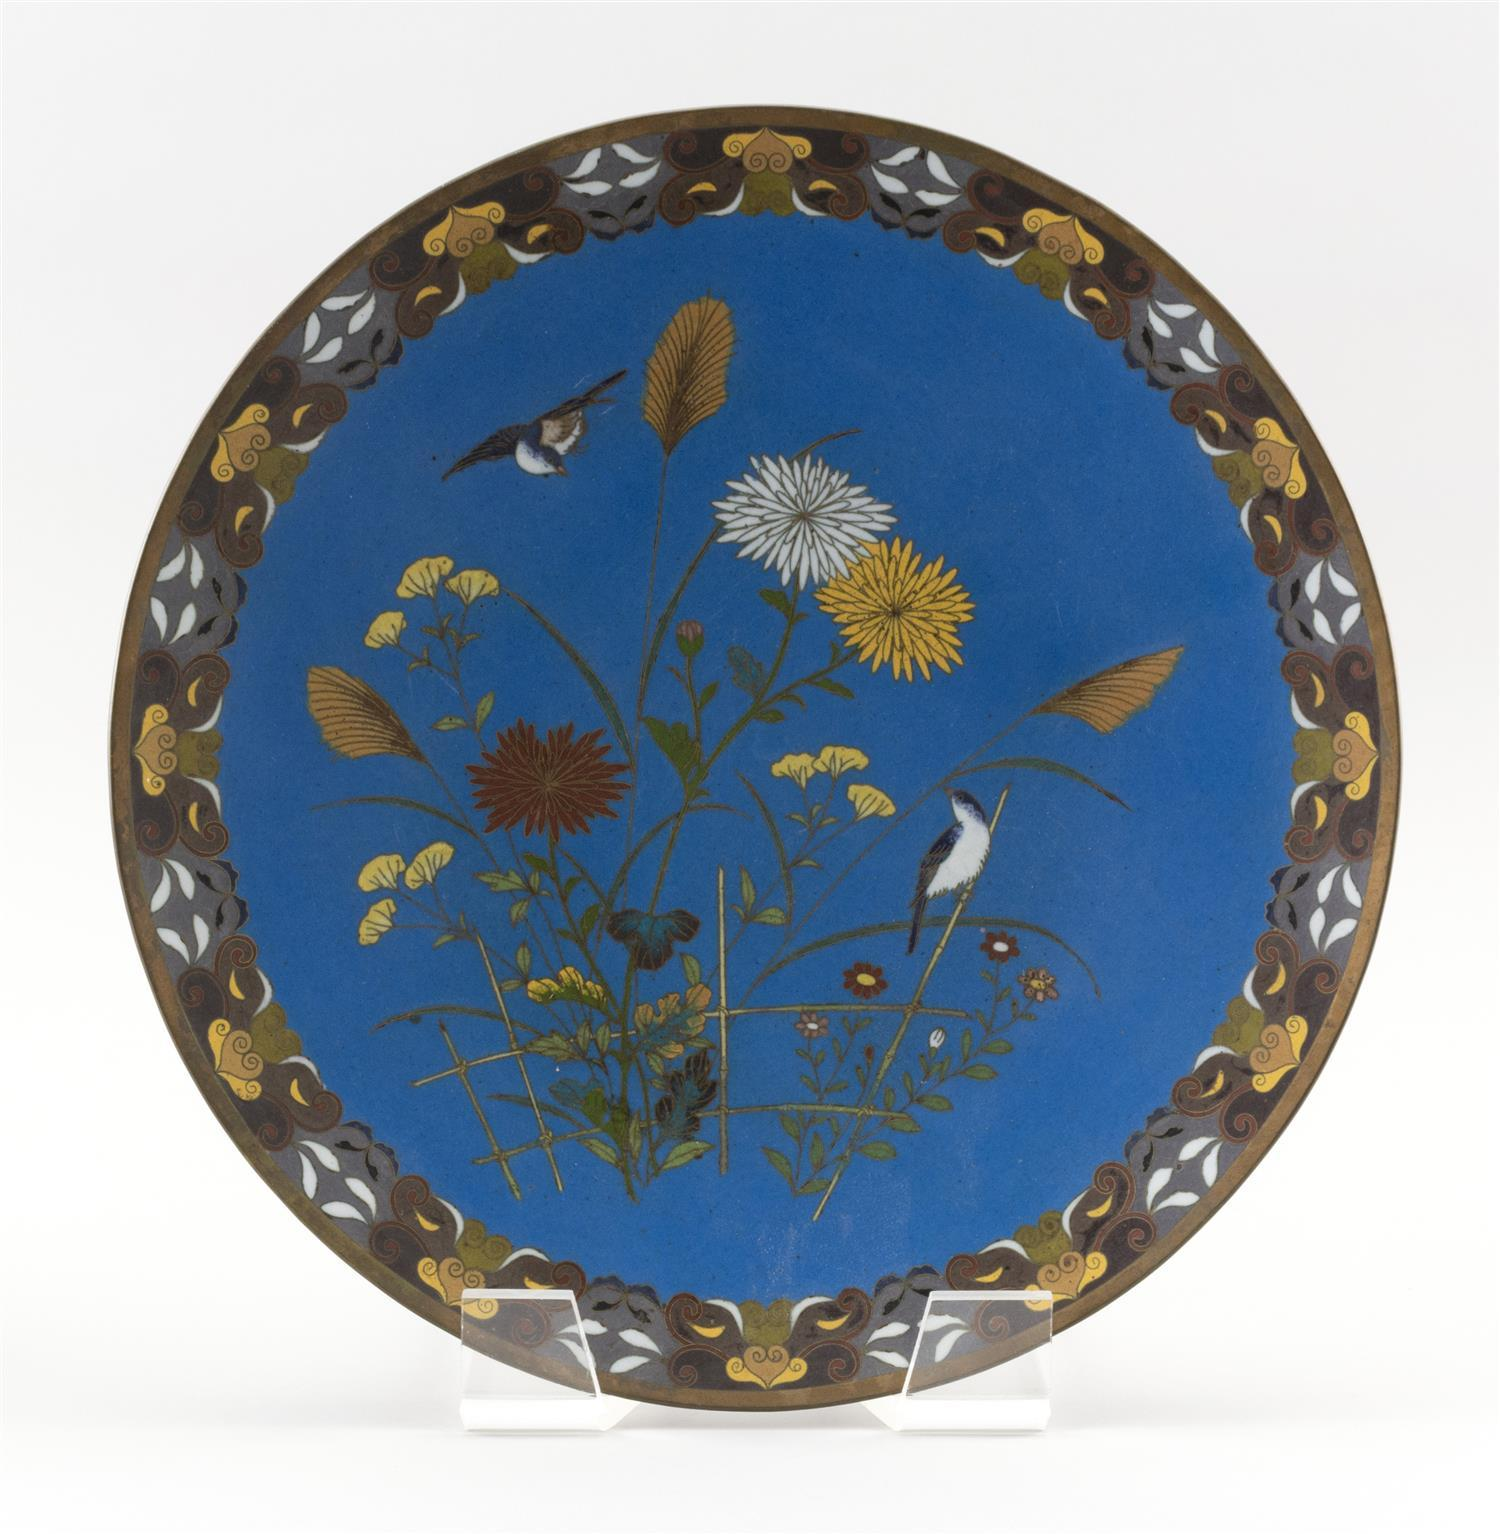 "JAPANESE CLOISONNÉ ENAMEL CHARGER Bird and flower decoration on a turquoise ground surrounded by a geometric border. Diameter 12""."